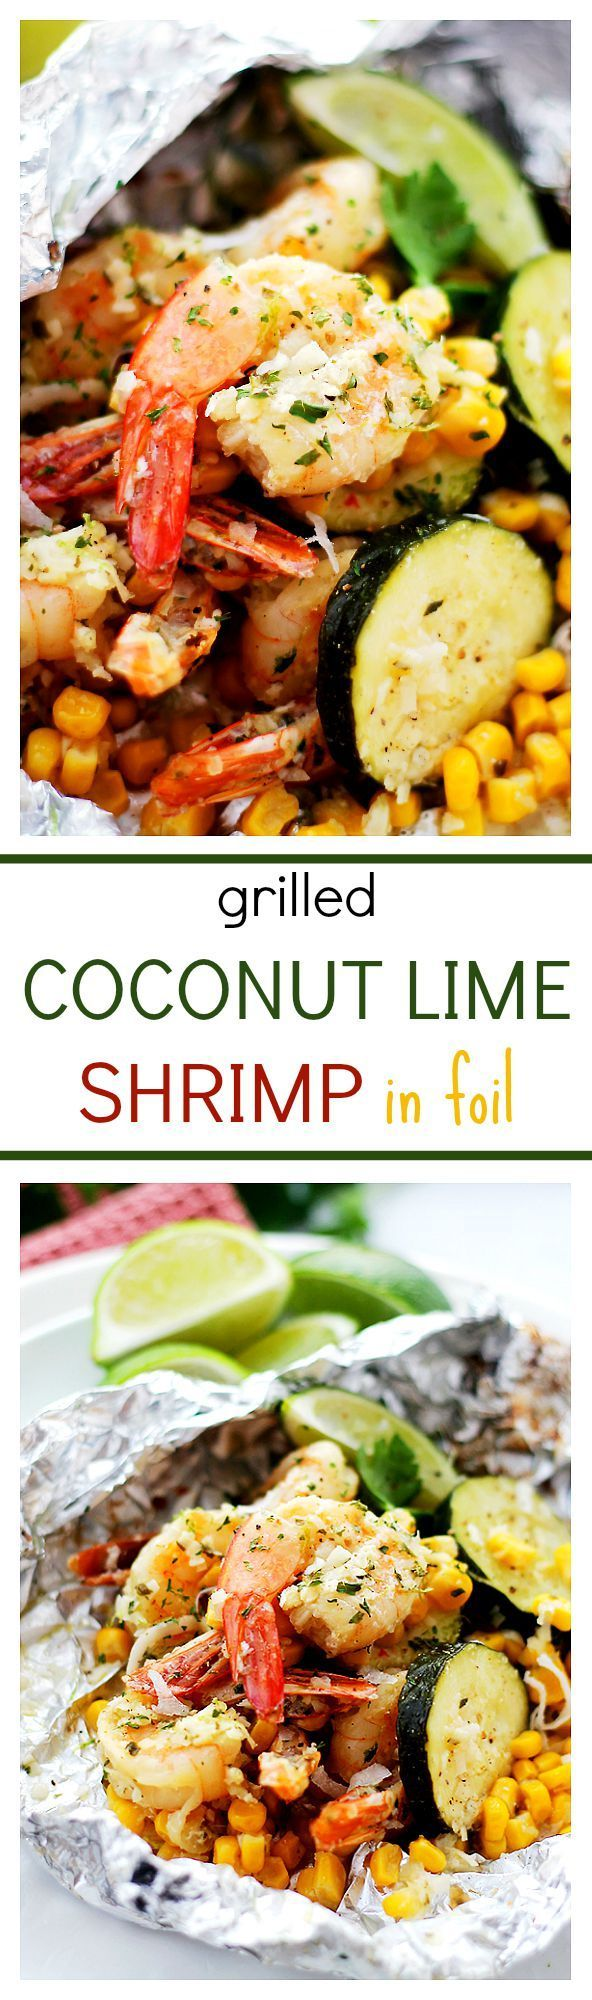 Grilled Coconut Lime Shrimp and Summer Veggies in Foil – Coconut-lime marinated shrimp, corn, and zucchini grilled in foil-packets. This makes for one easy, super delicious, 30-minute summer dinner!